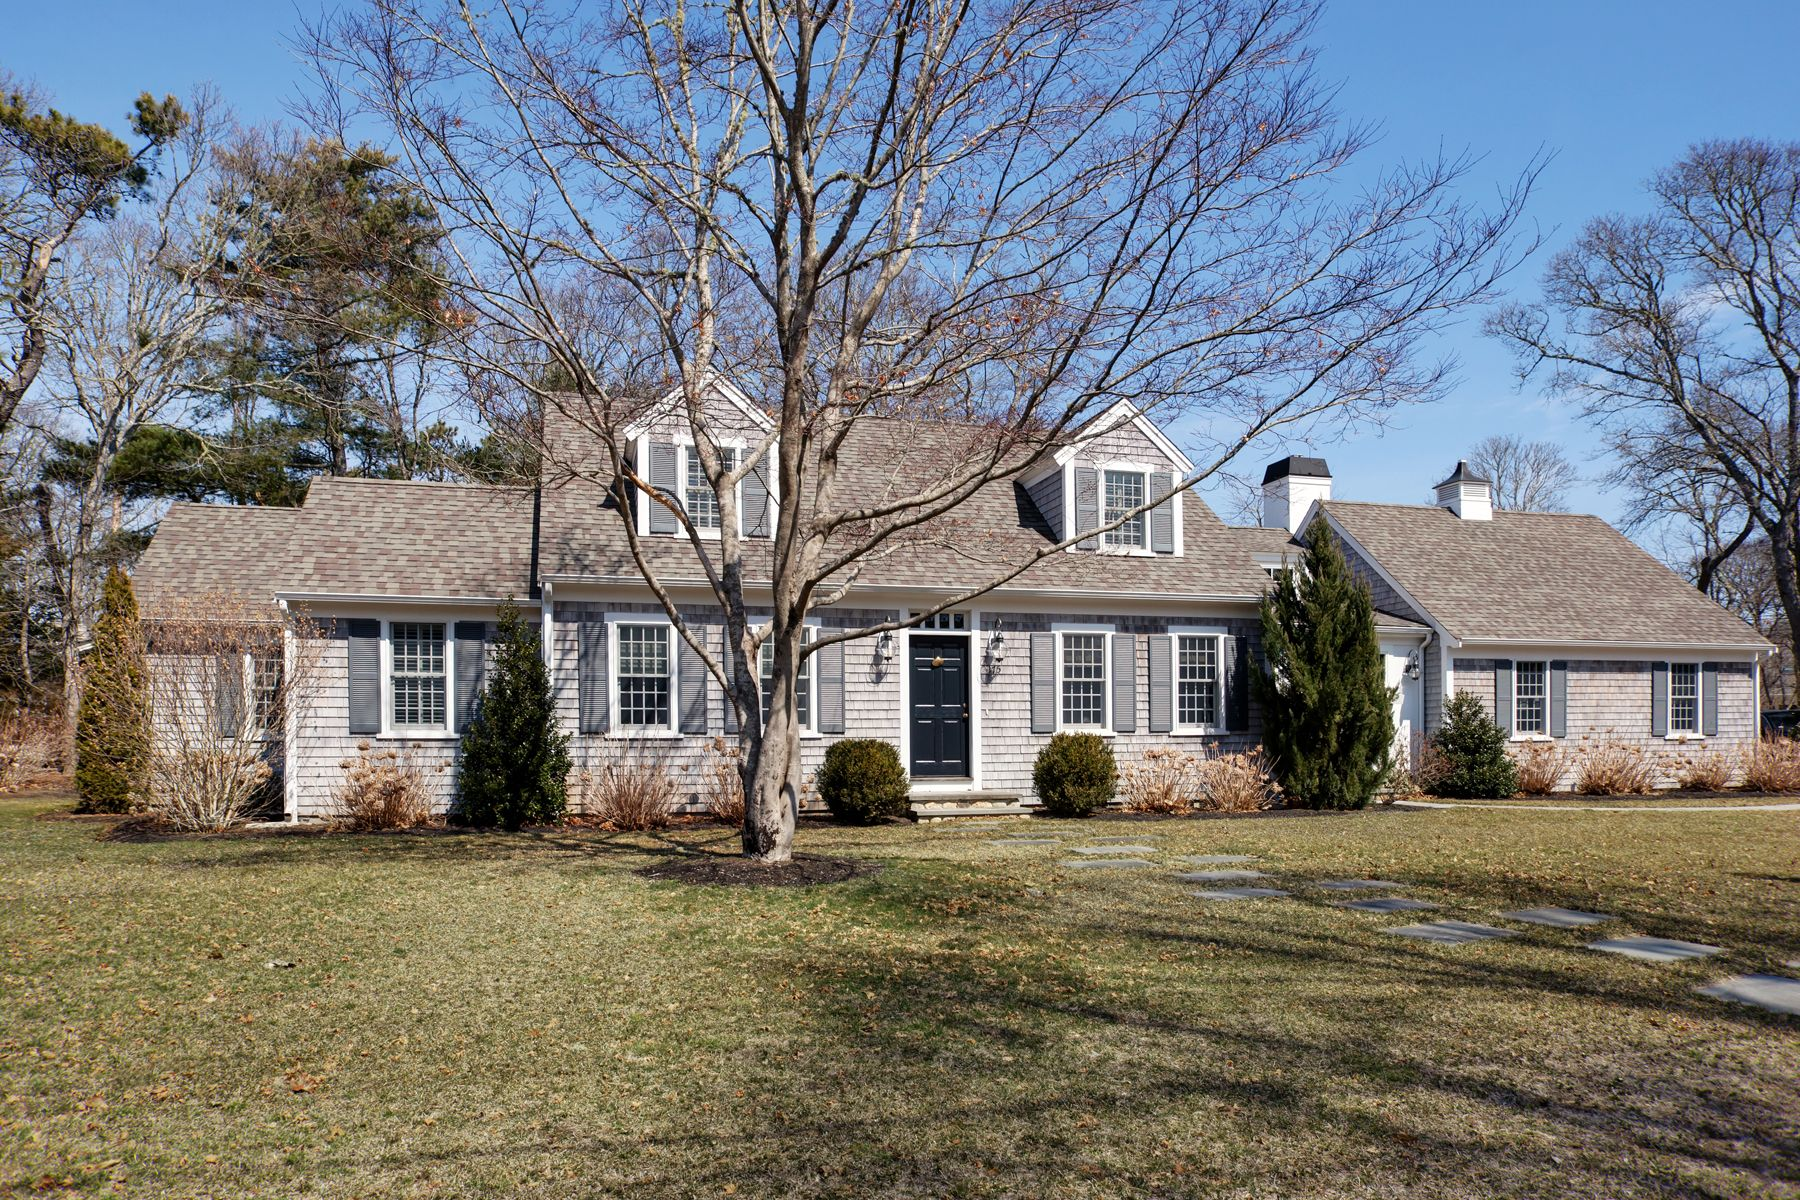 Single Family Home for Active at 175 Wianno Circle, Osterville 175 Wianno Circle Osterville, Massachusetts 02655 United States